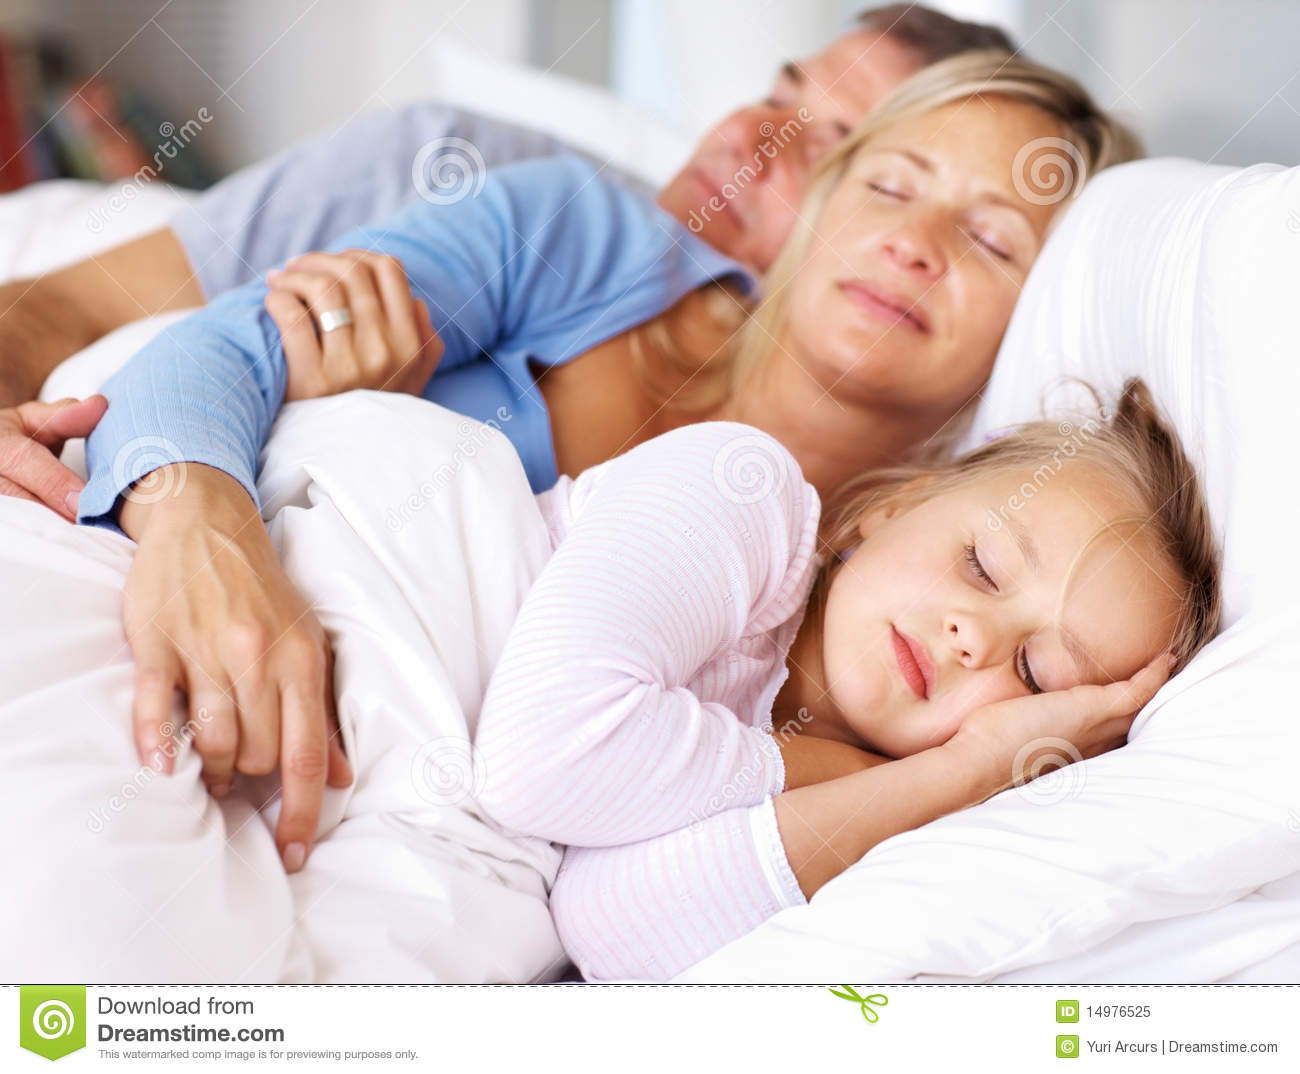 Lovely Family Sleeping Together On Bed Stock Image Image